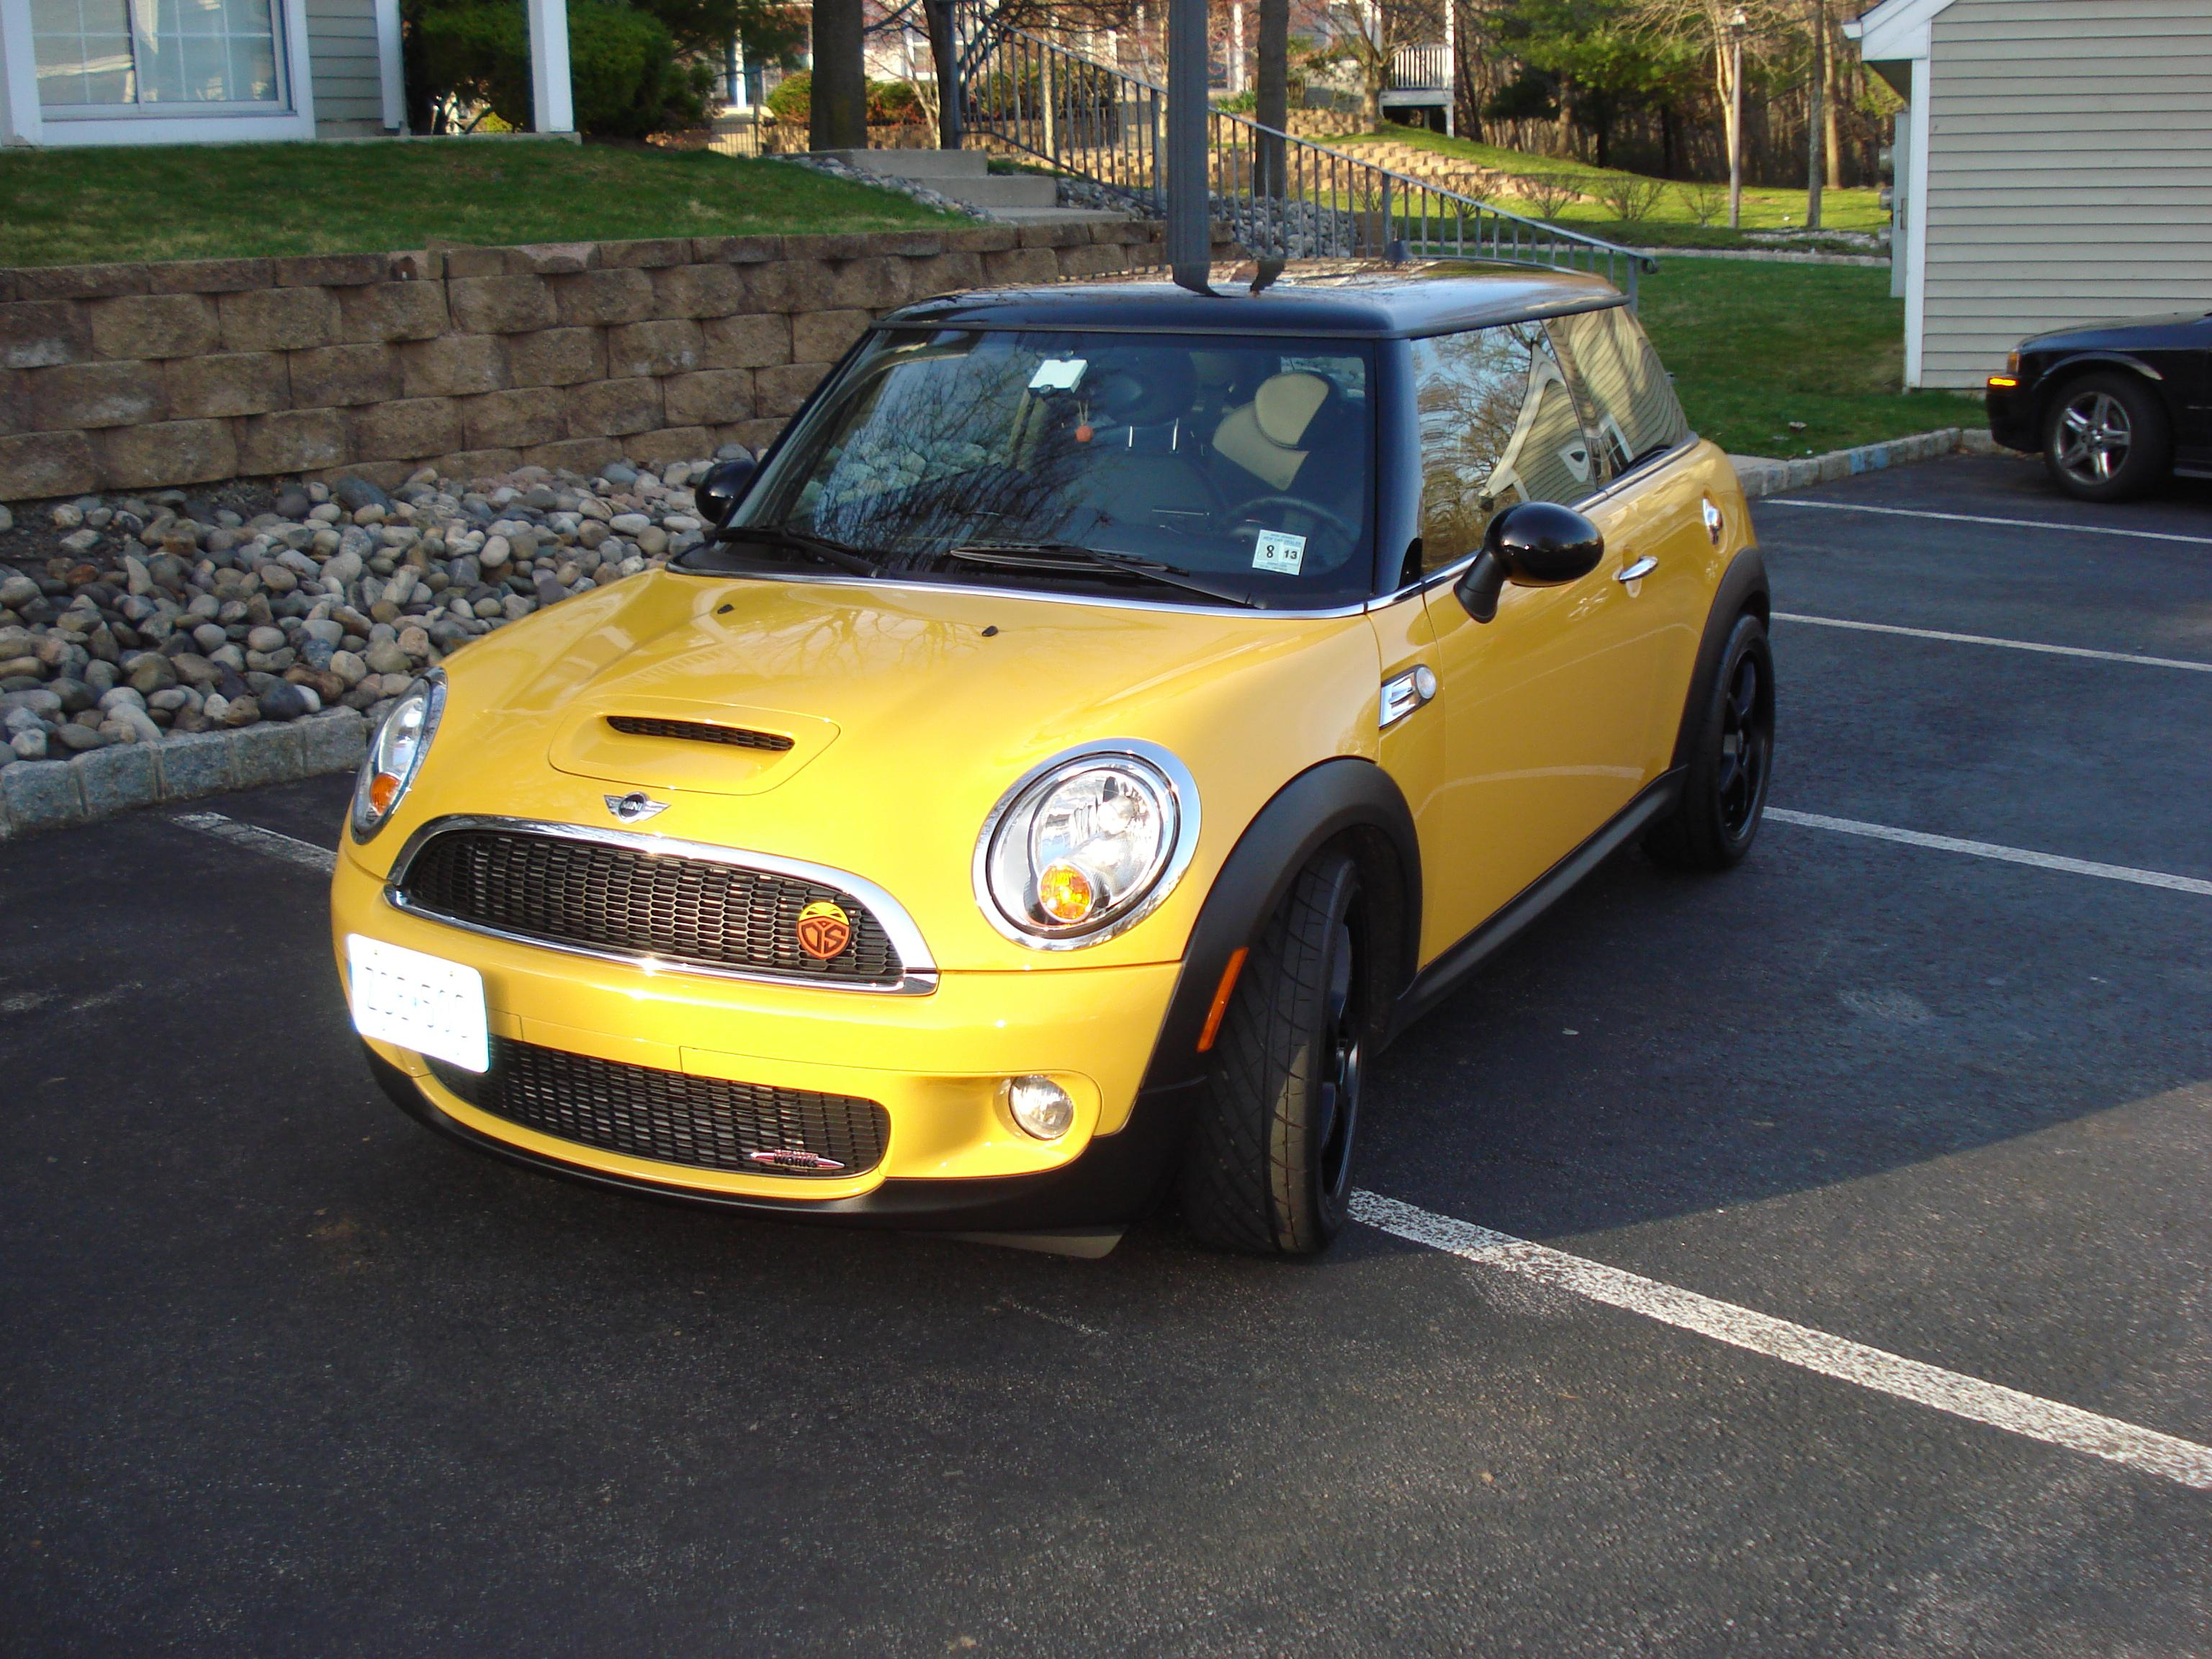 09MellowJCW 2009 MINI Cooper 14369715